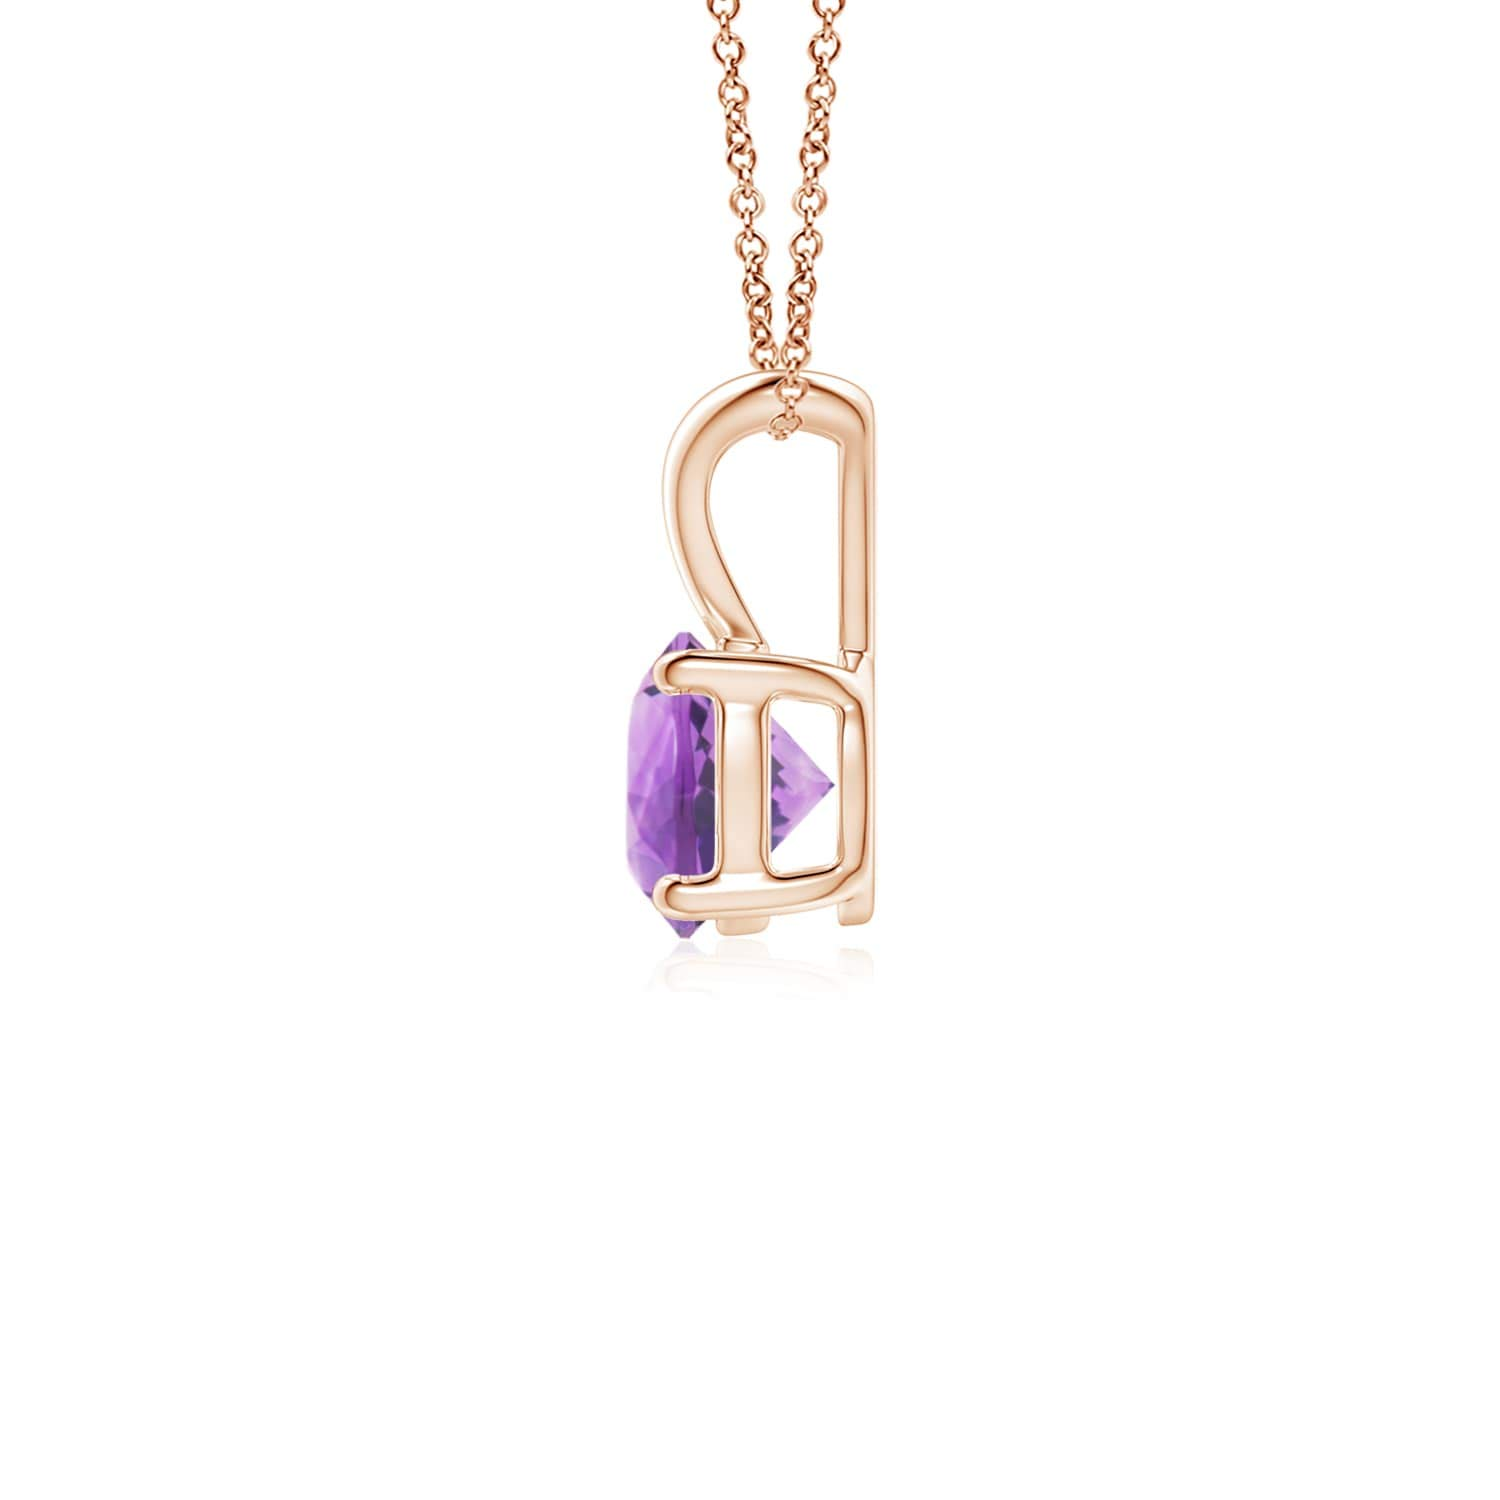 5mm Amethyst V-Bale Round Amethyst Solitaire Pendant